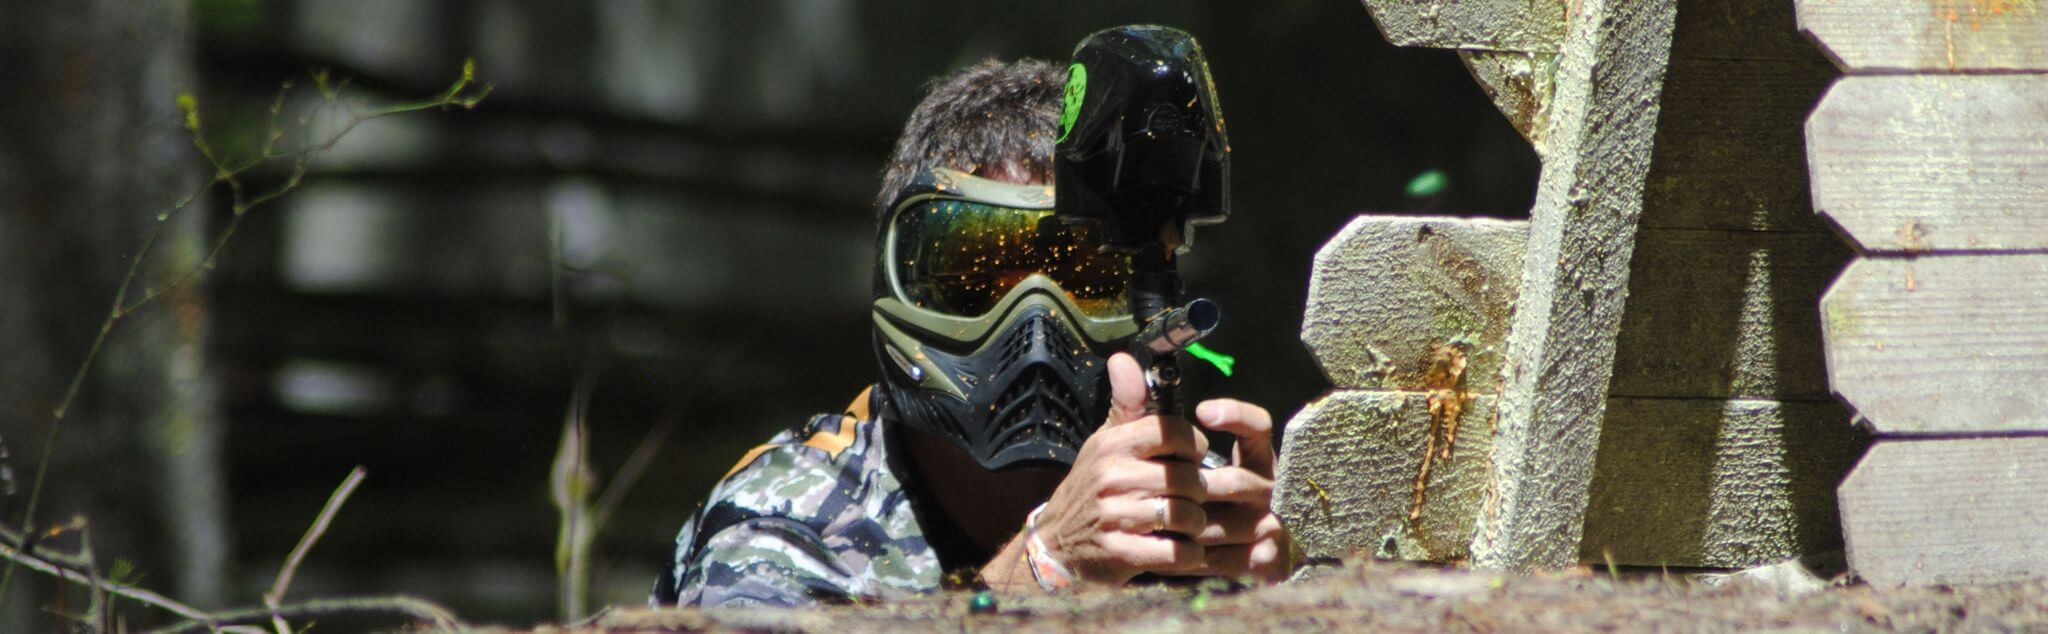 Paintball in Toledo